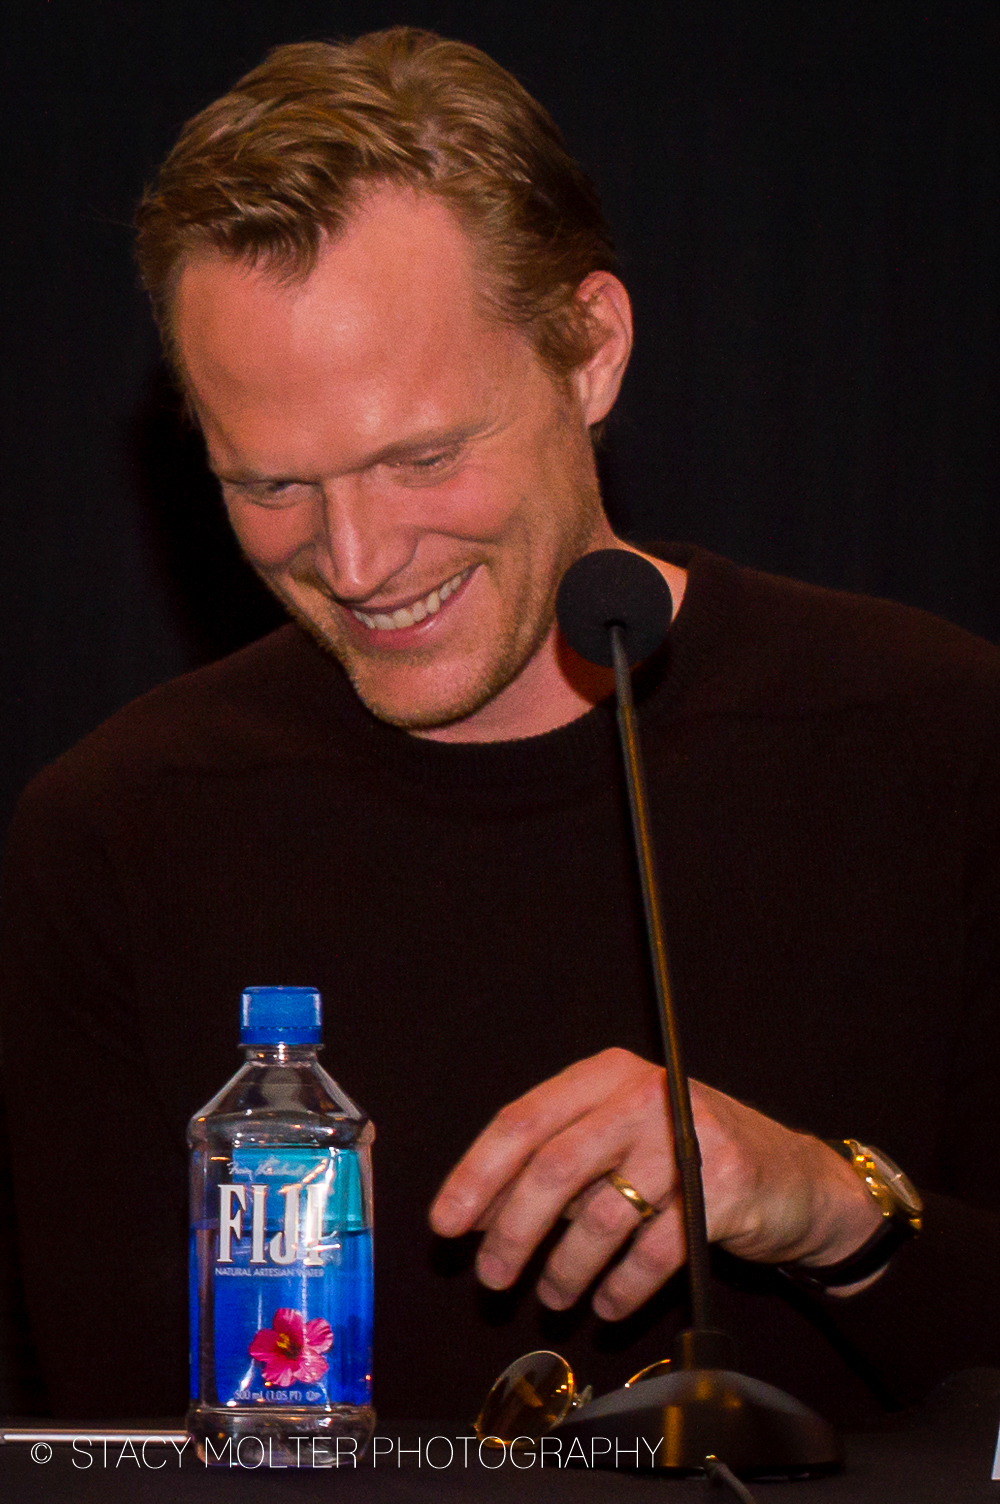 Paul Bettany - Avengers Age of Ultron Press Conference Junket